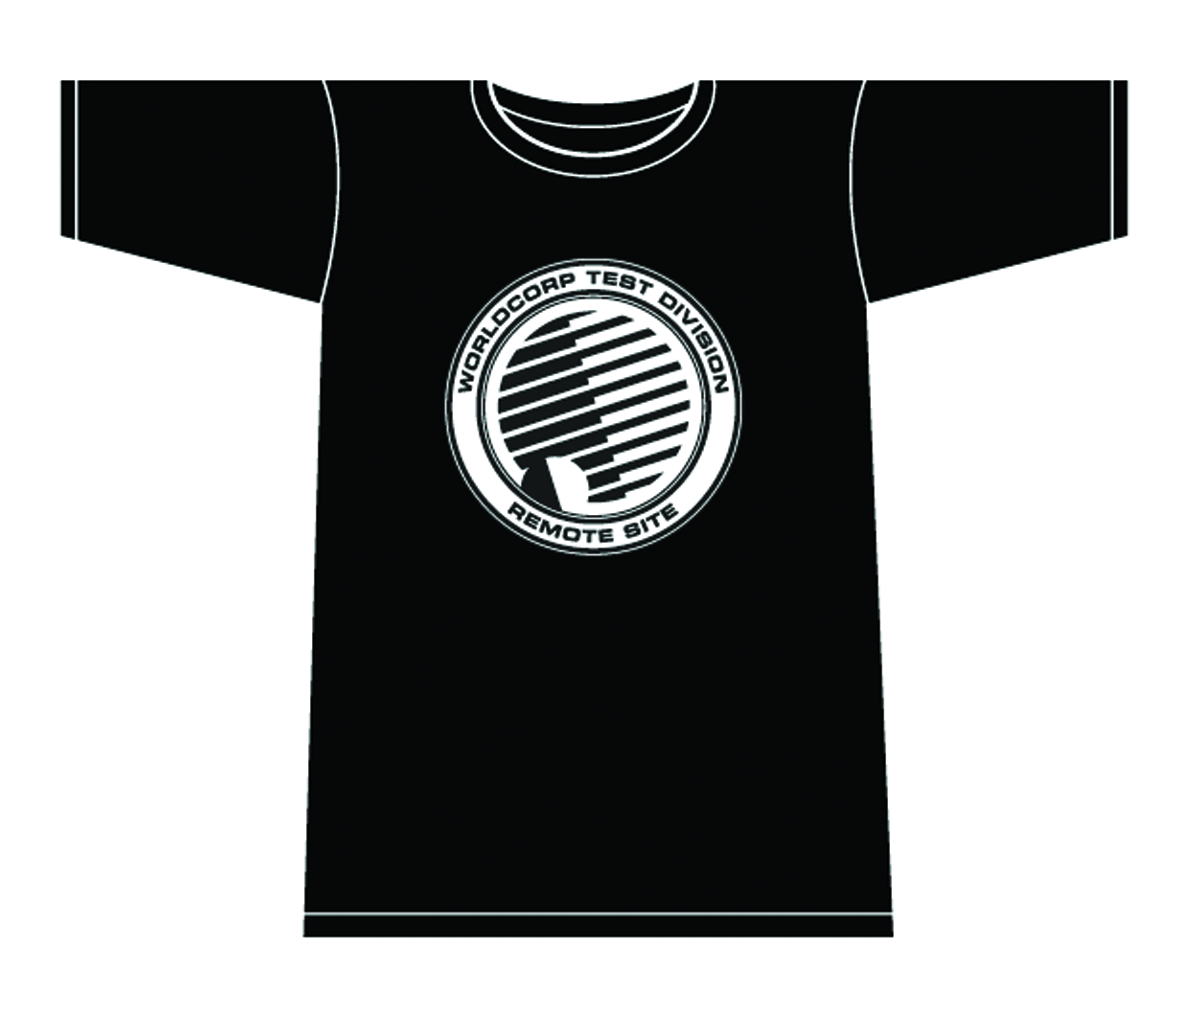 NOWHERE MEN WORLD CORP TEST DIVISION T/S BLK MENS MED